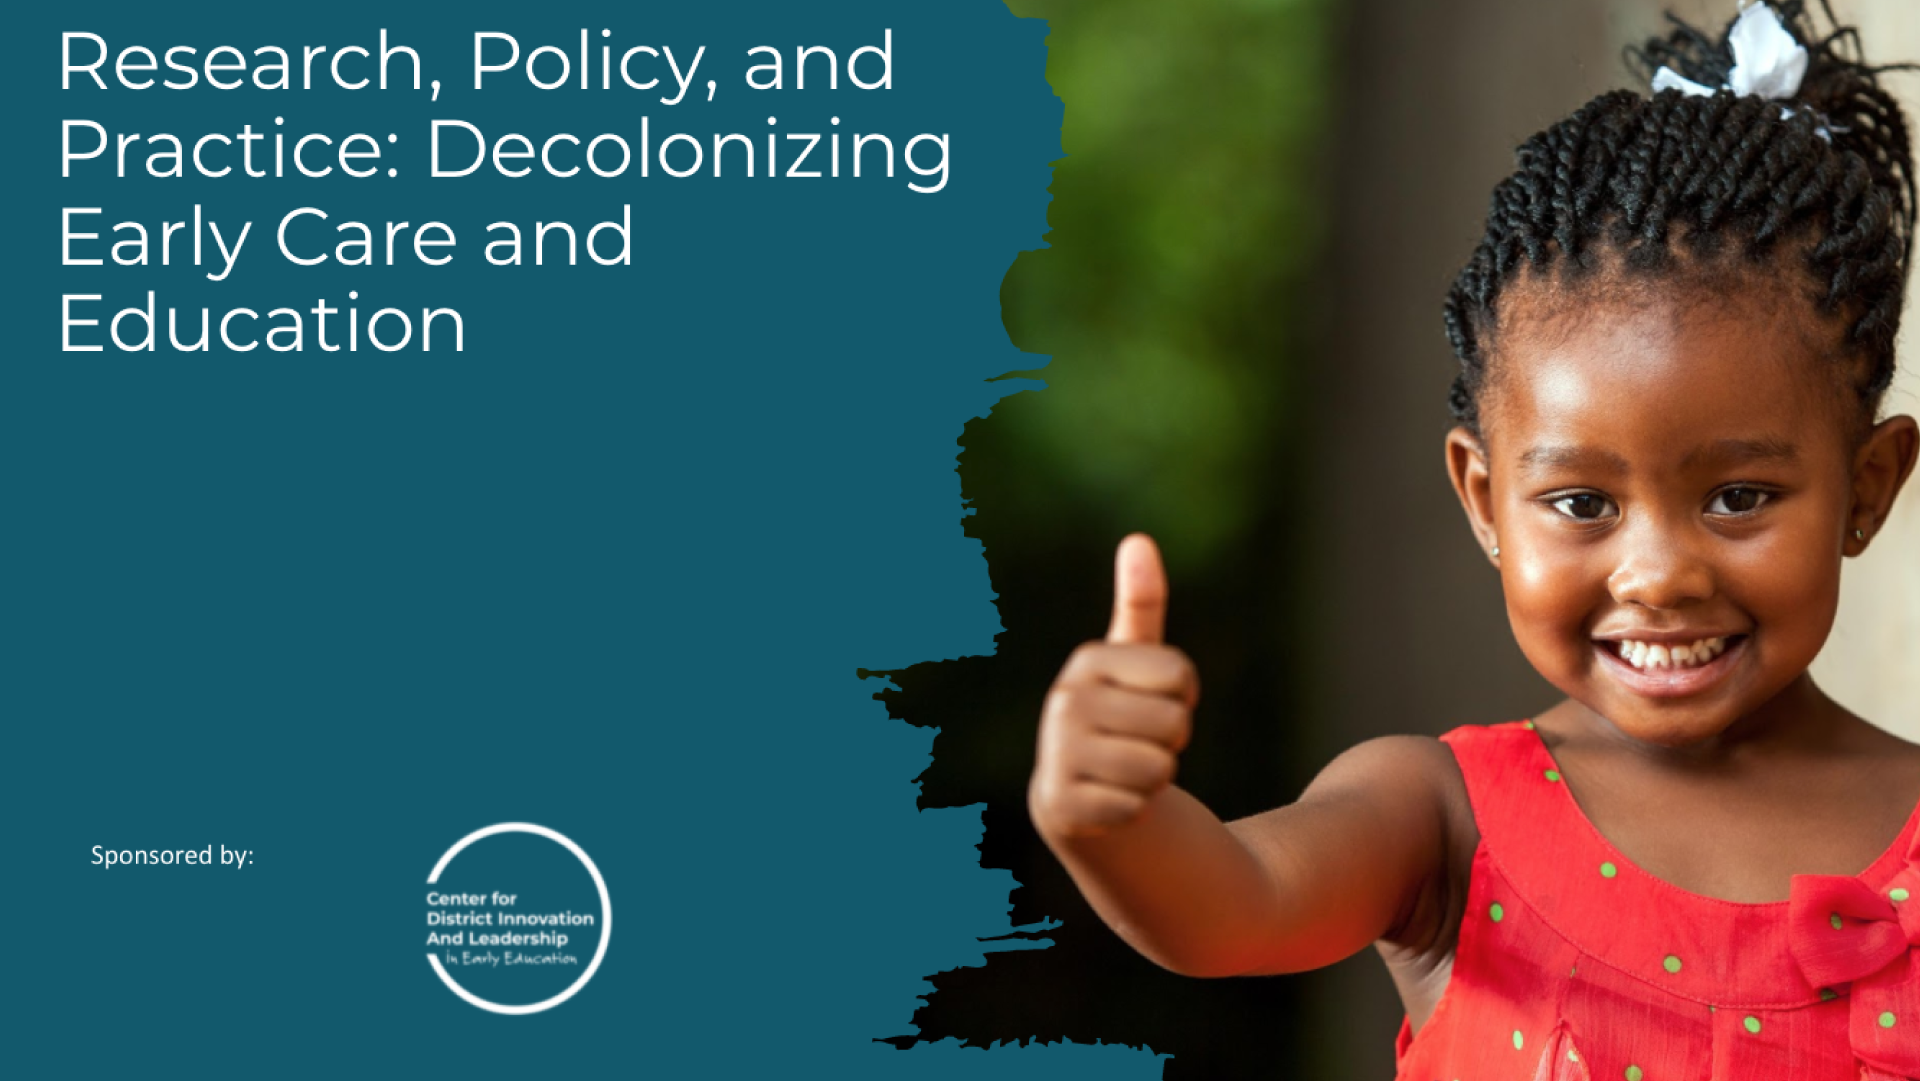 Research, Policy and Practice: Decolonizing Early Care and Education